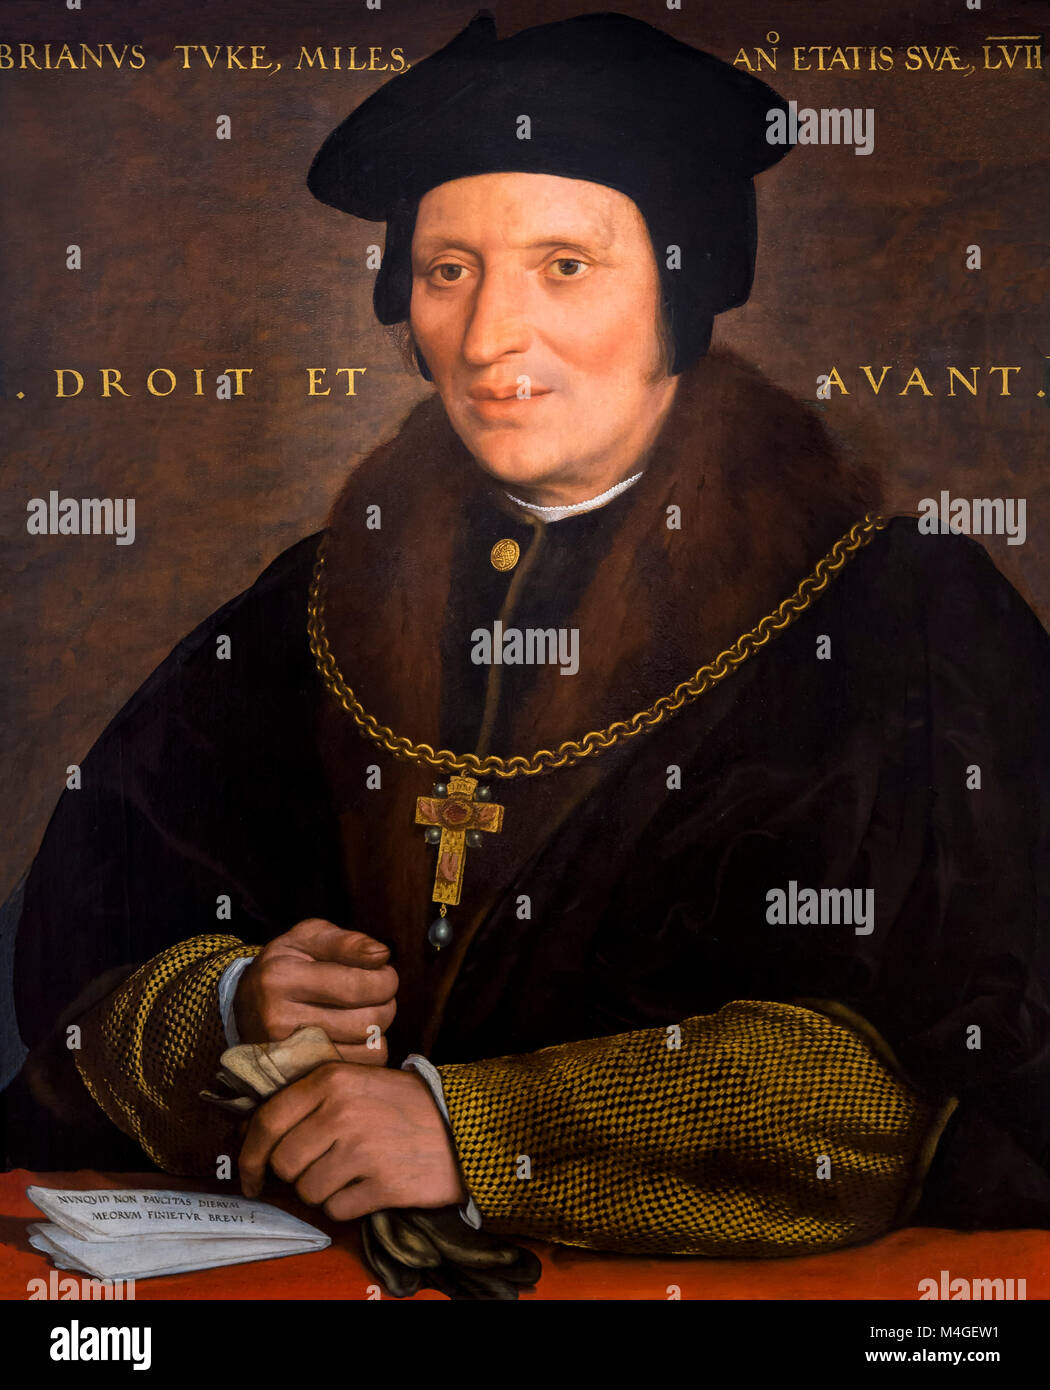 Sir Brian Tuke, Hans Holbein the Younger, circa 152-1534, National Gallery of Art, Washington DC, USA, North America - Stock Image